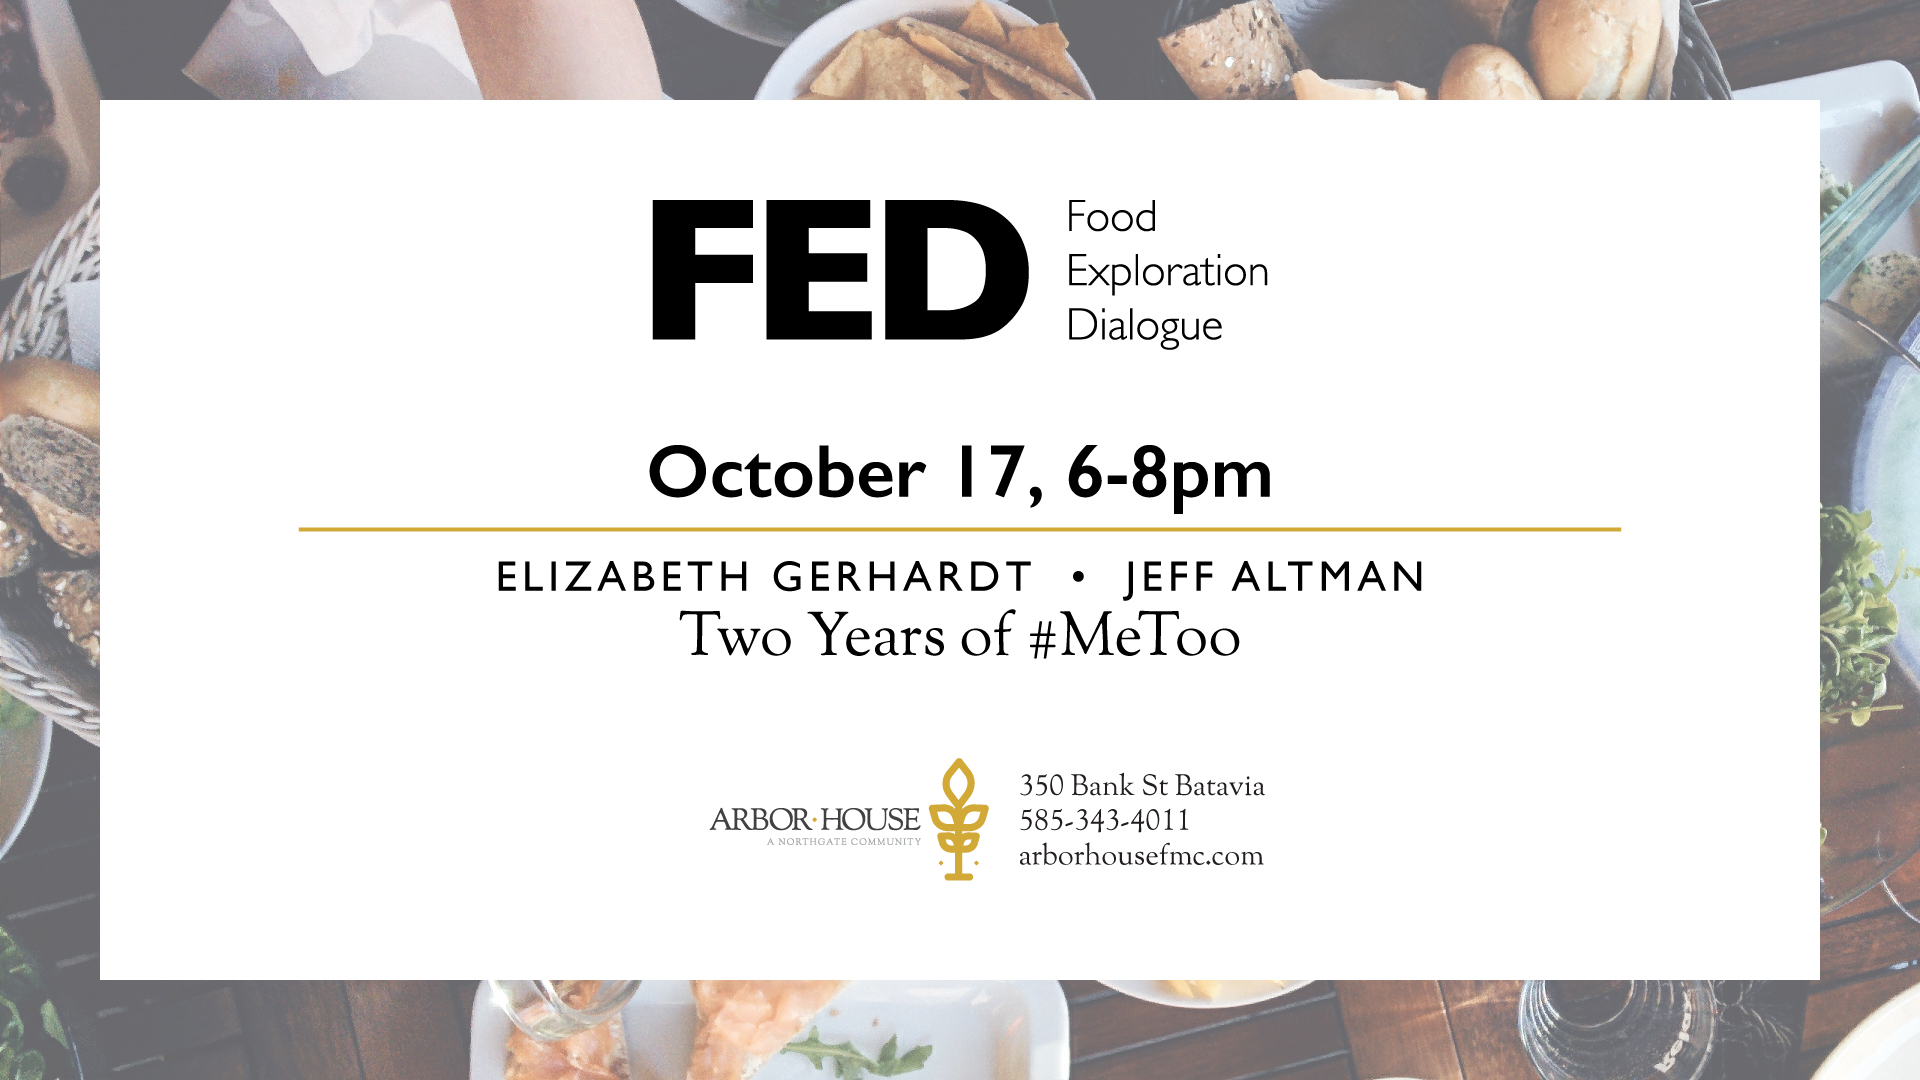 FED Talk October 17 at Arbor House Free Methodist Church